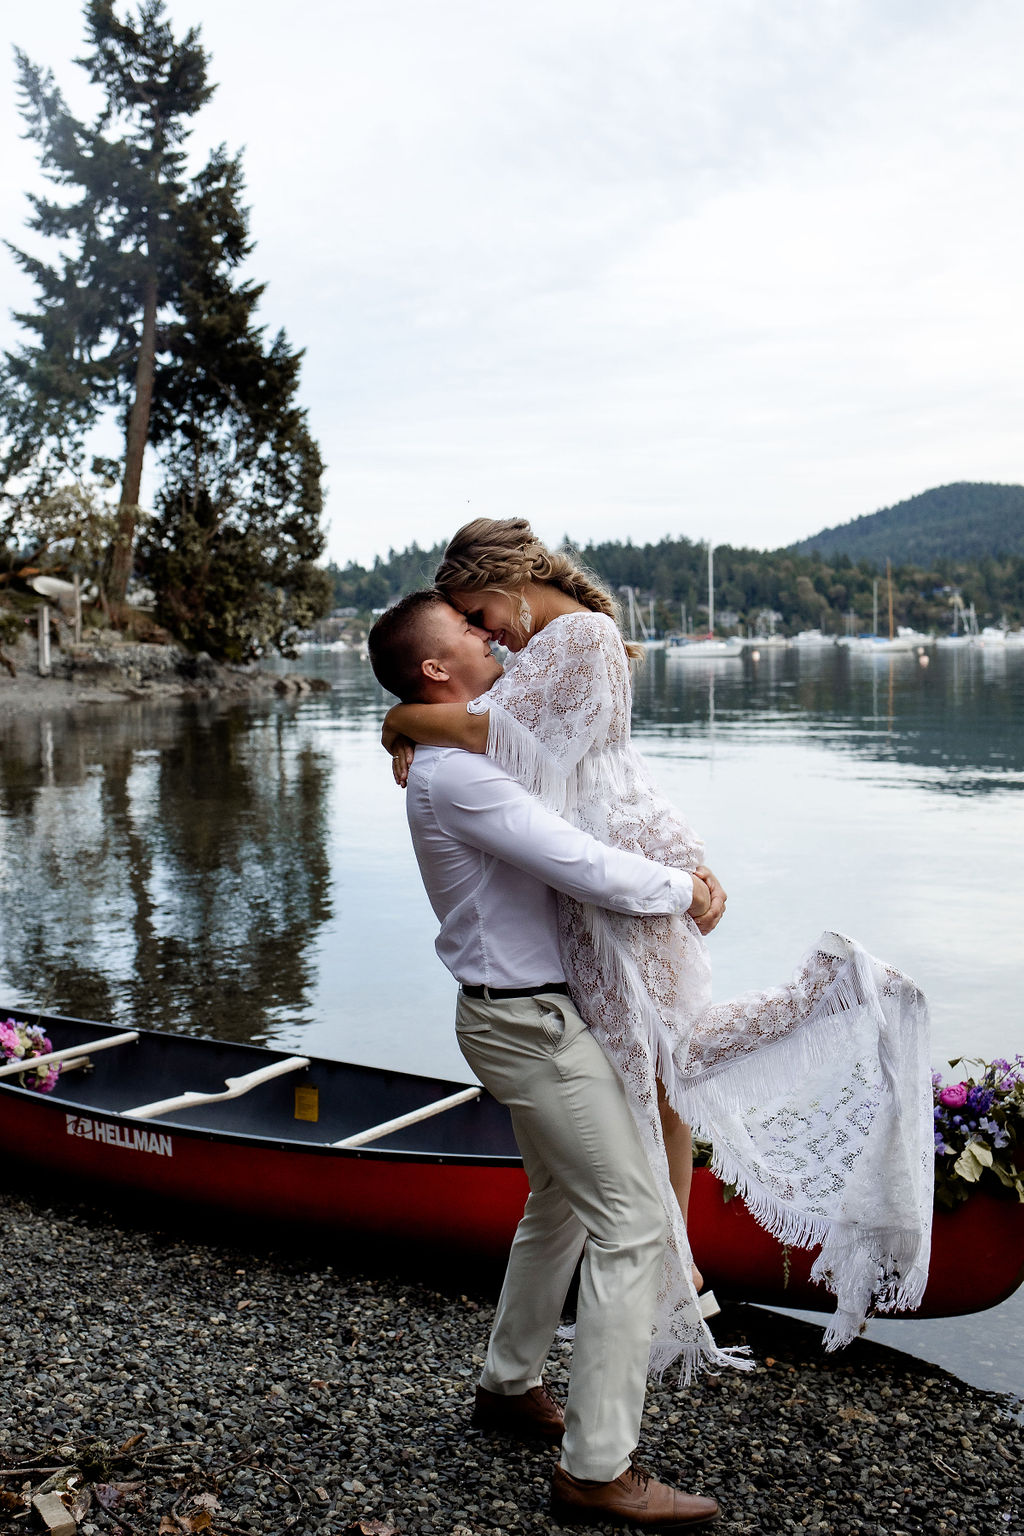 Groom lifts his bride out of a canoe